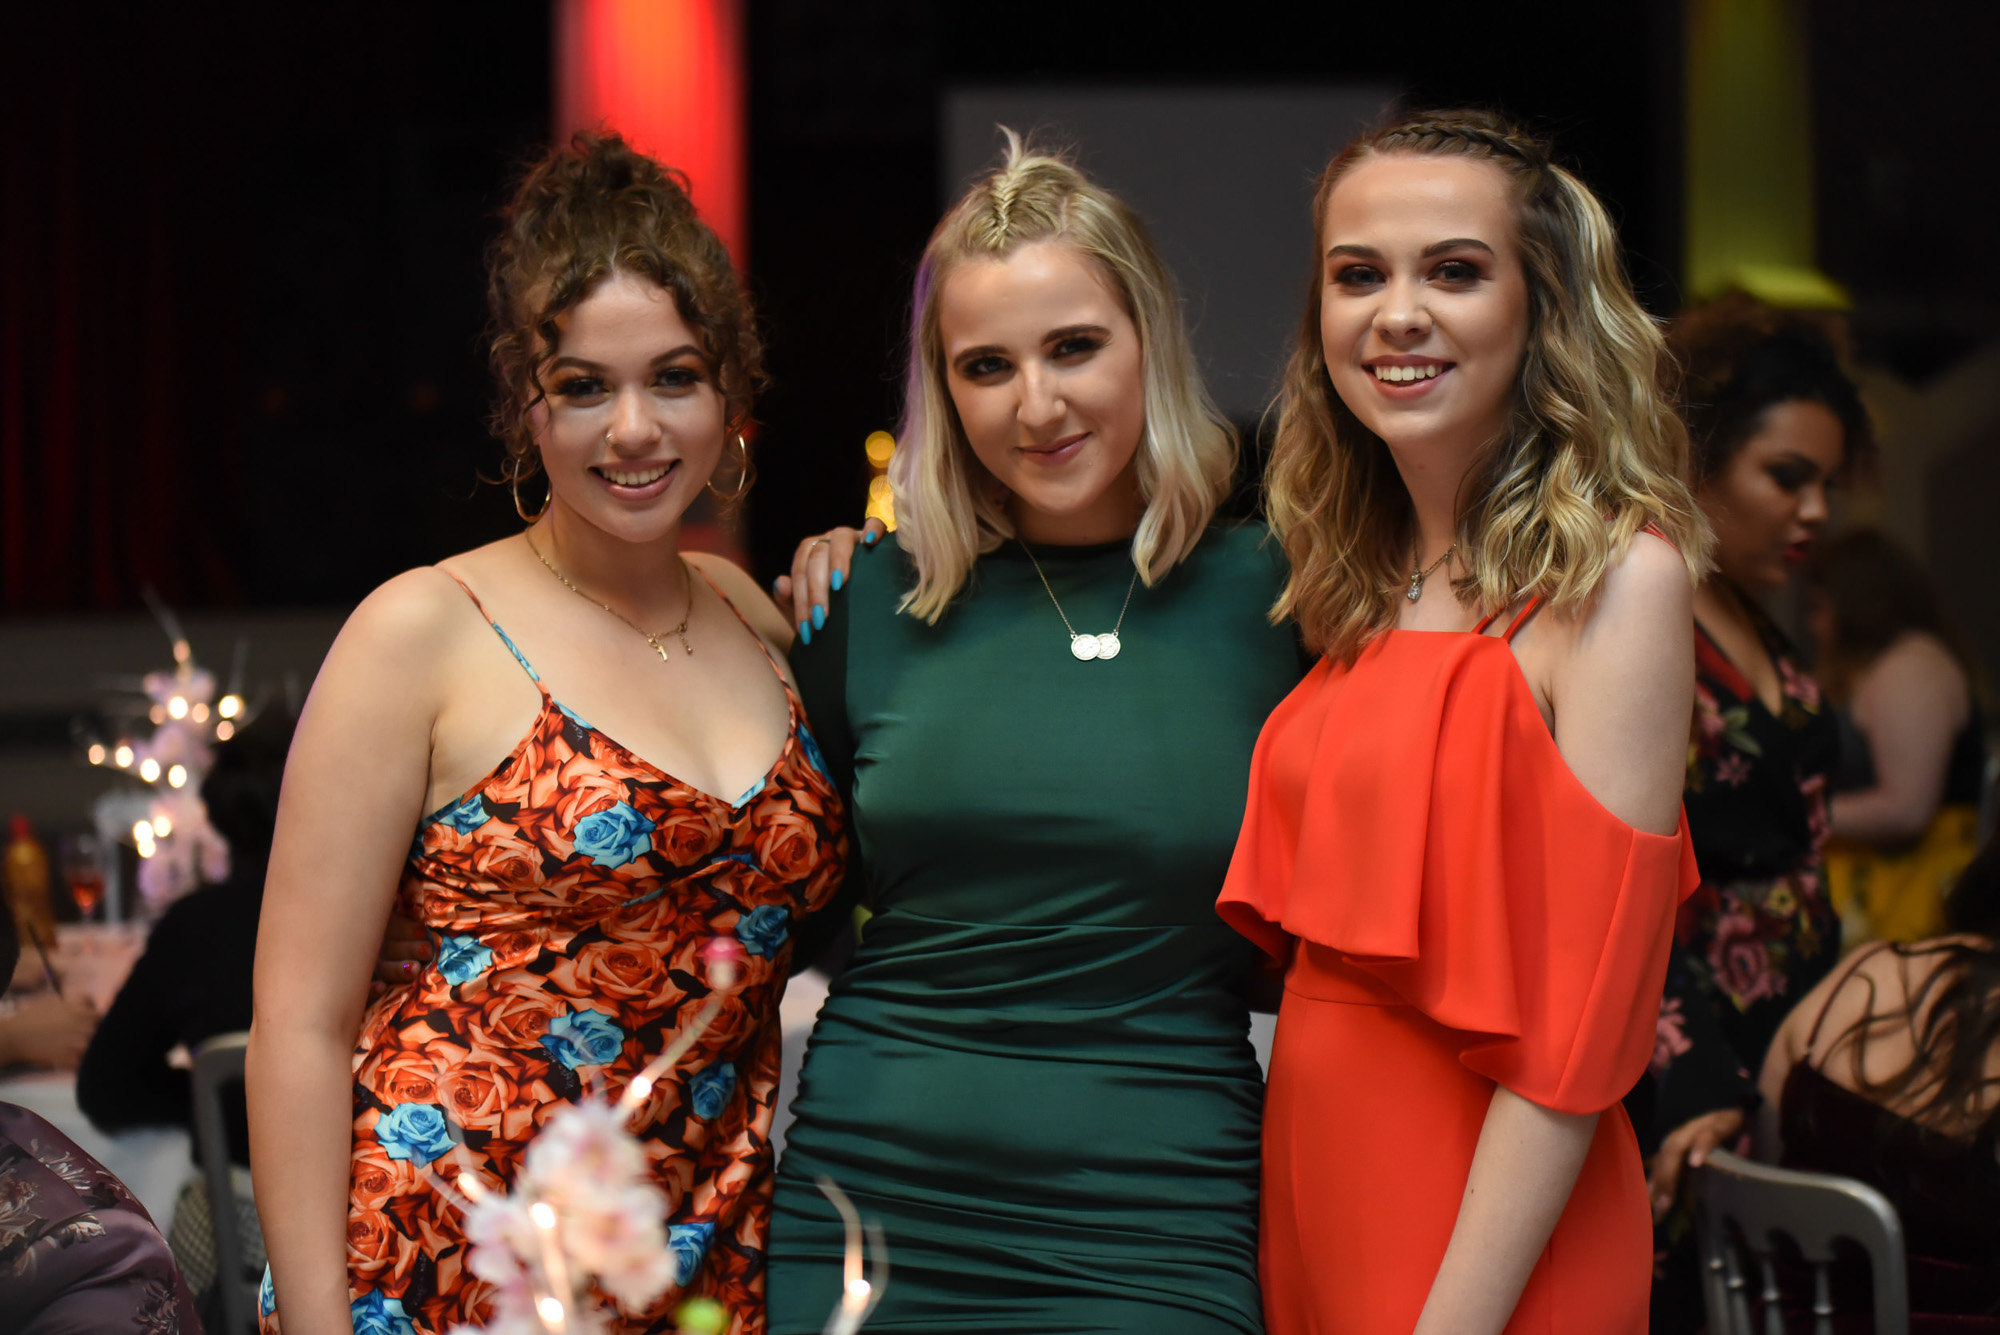 UCLAN_MT_BALL_2019_304.jpg